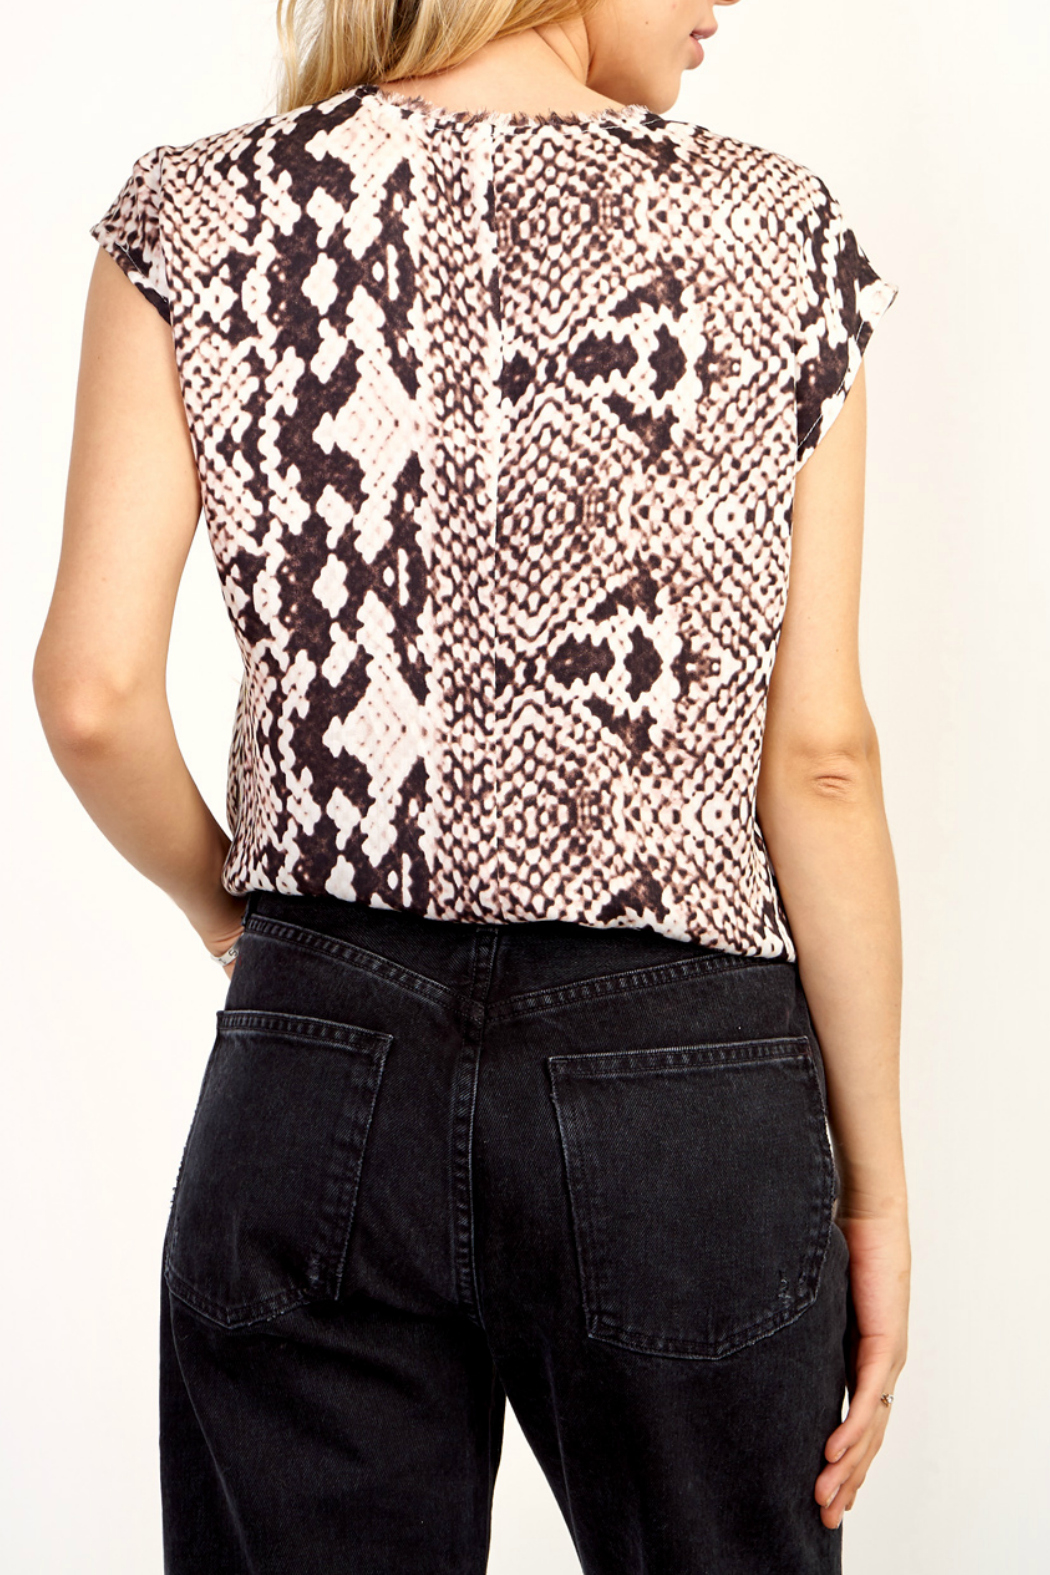 Olivaceous Python print top - Side Cropped Image